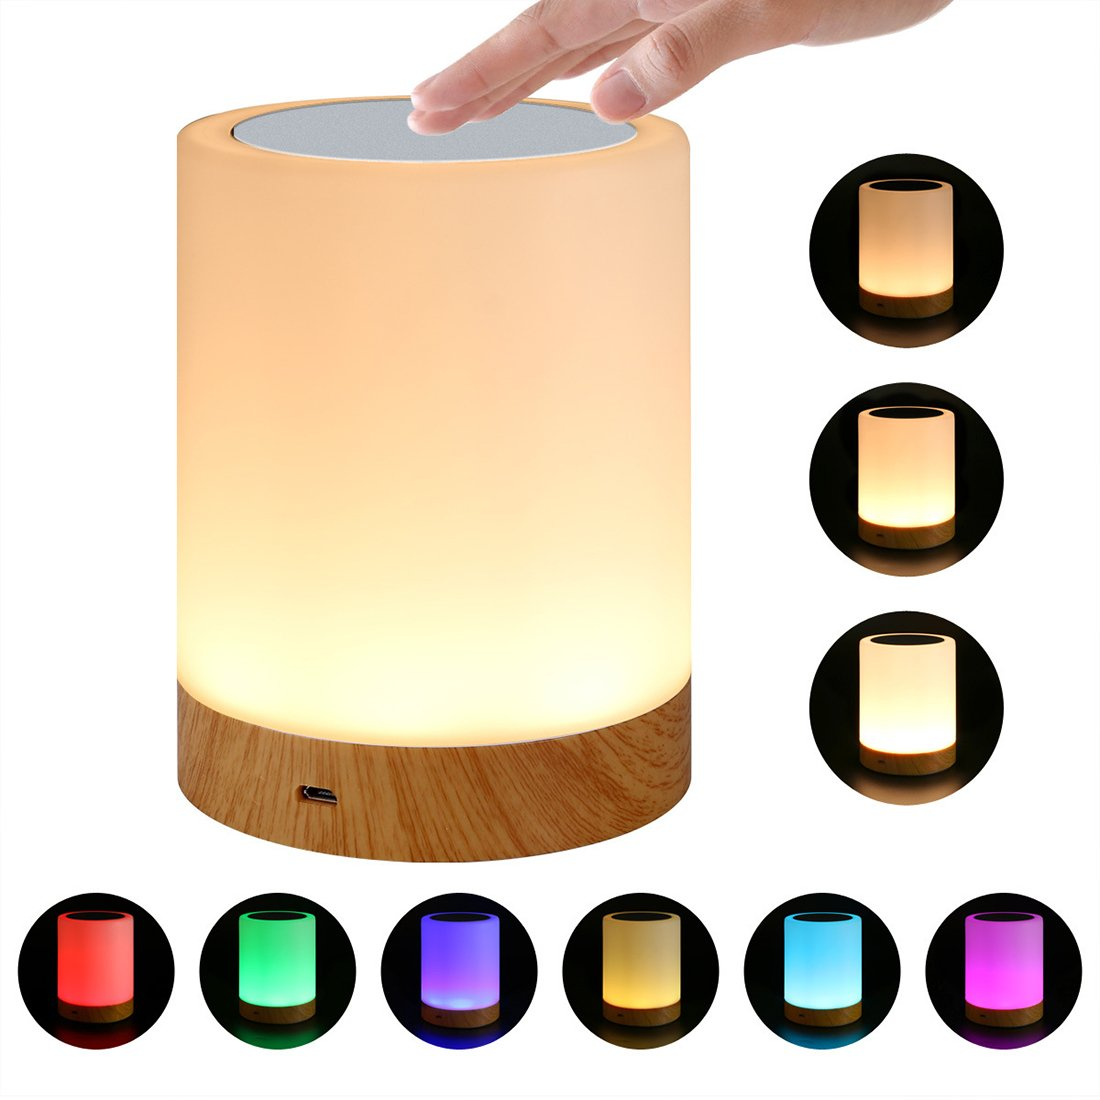 Comeon Bluetooth Speaker Lamp,Smart Touch Control Dimmable Color Lamp for Bedroom Sleeping Aid,Best Gift for Kids,Teens and Adults